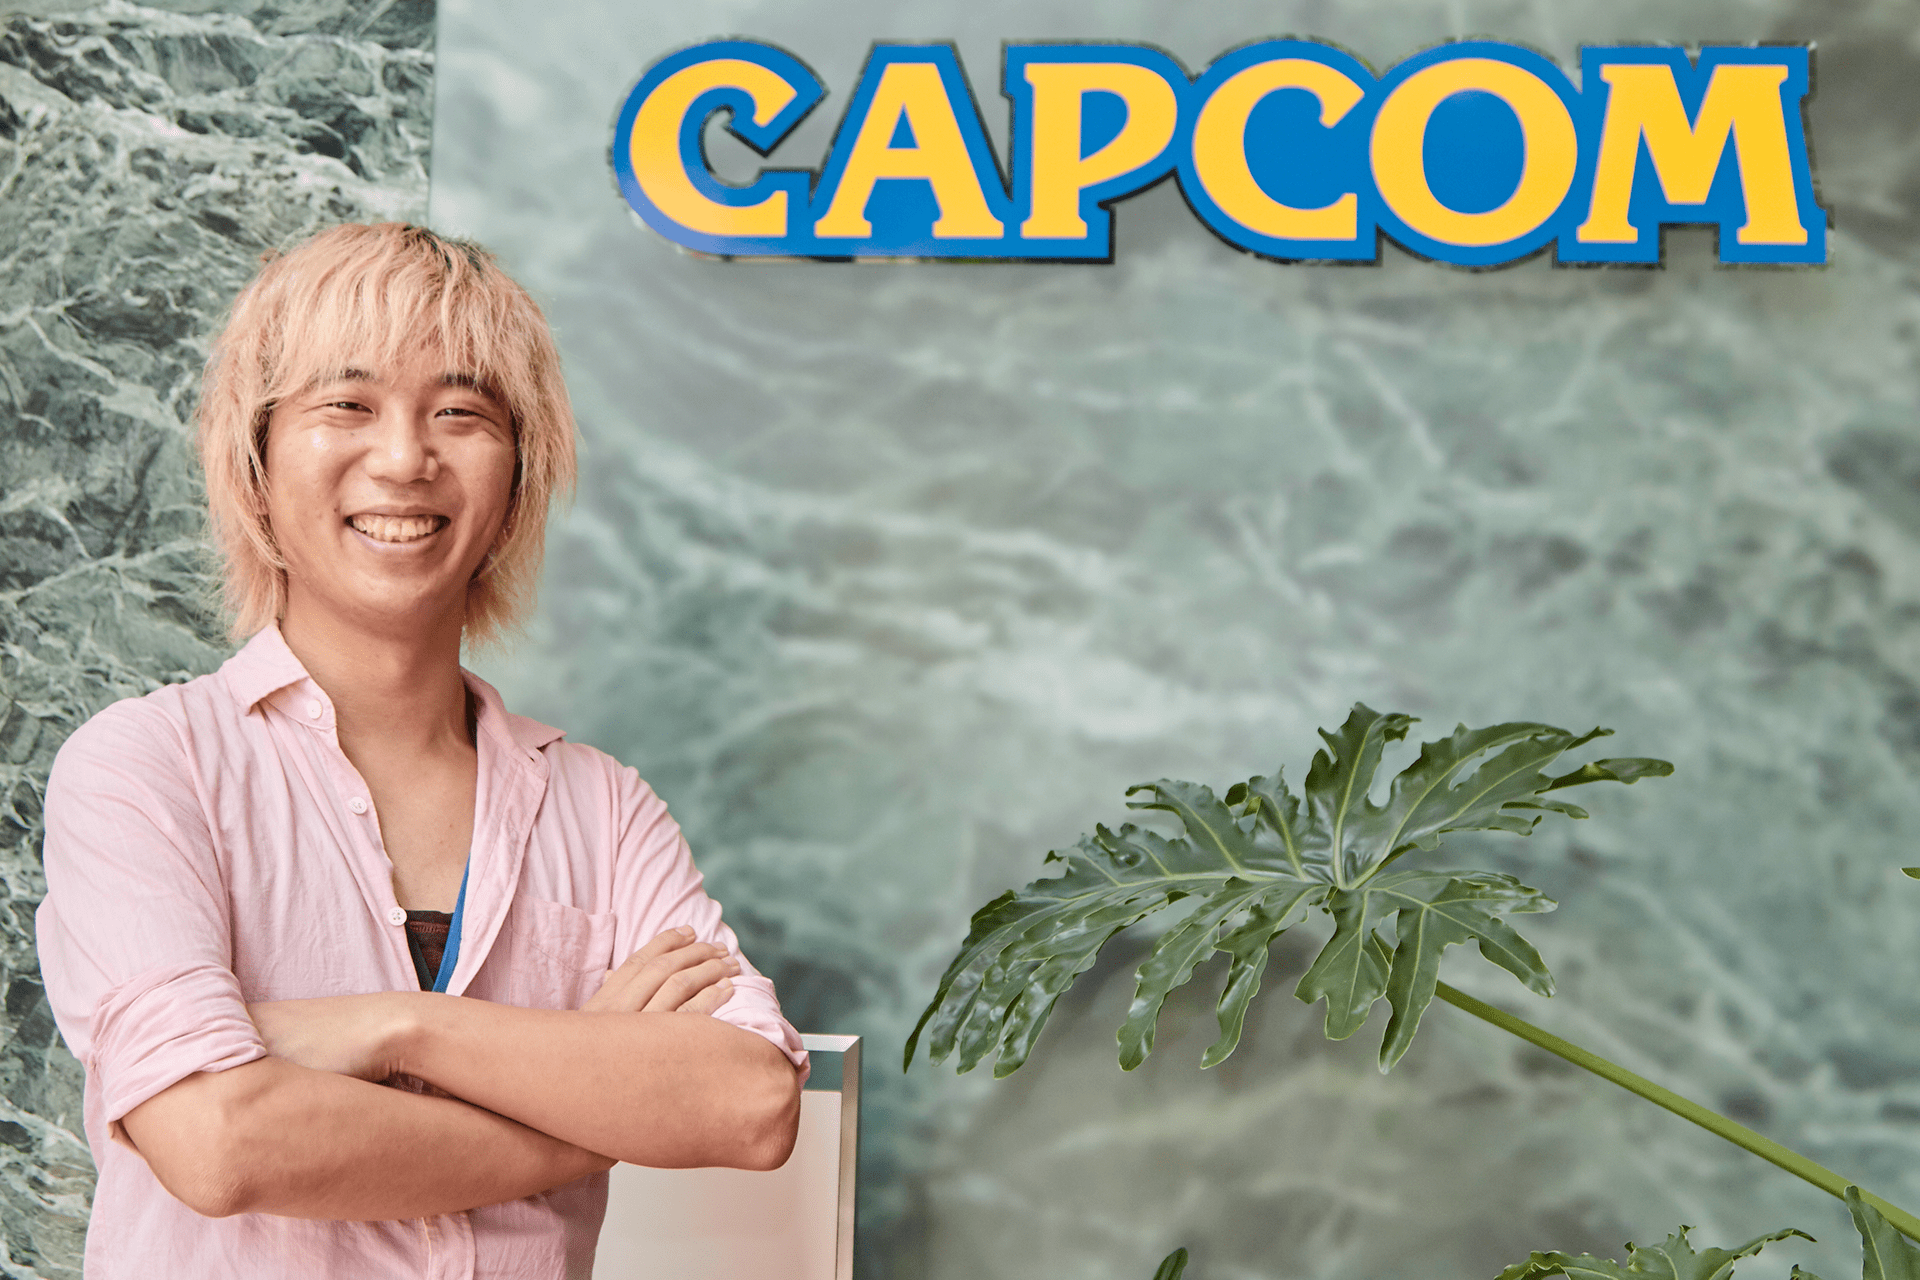 Capcom main